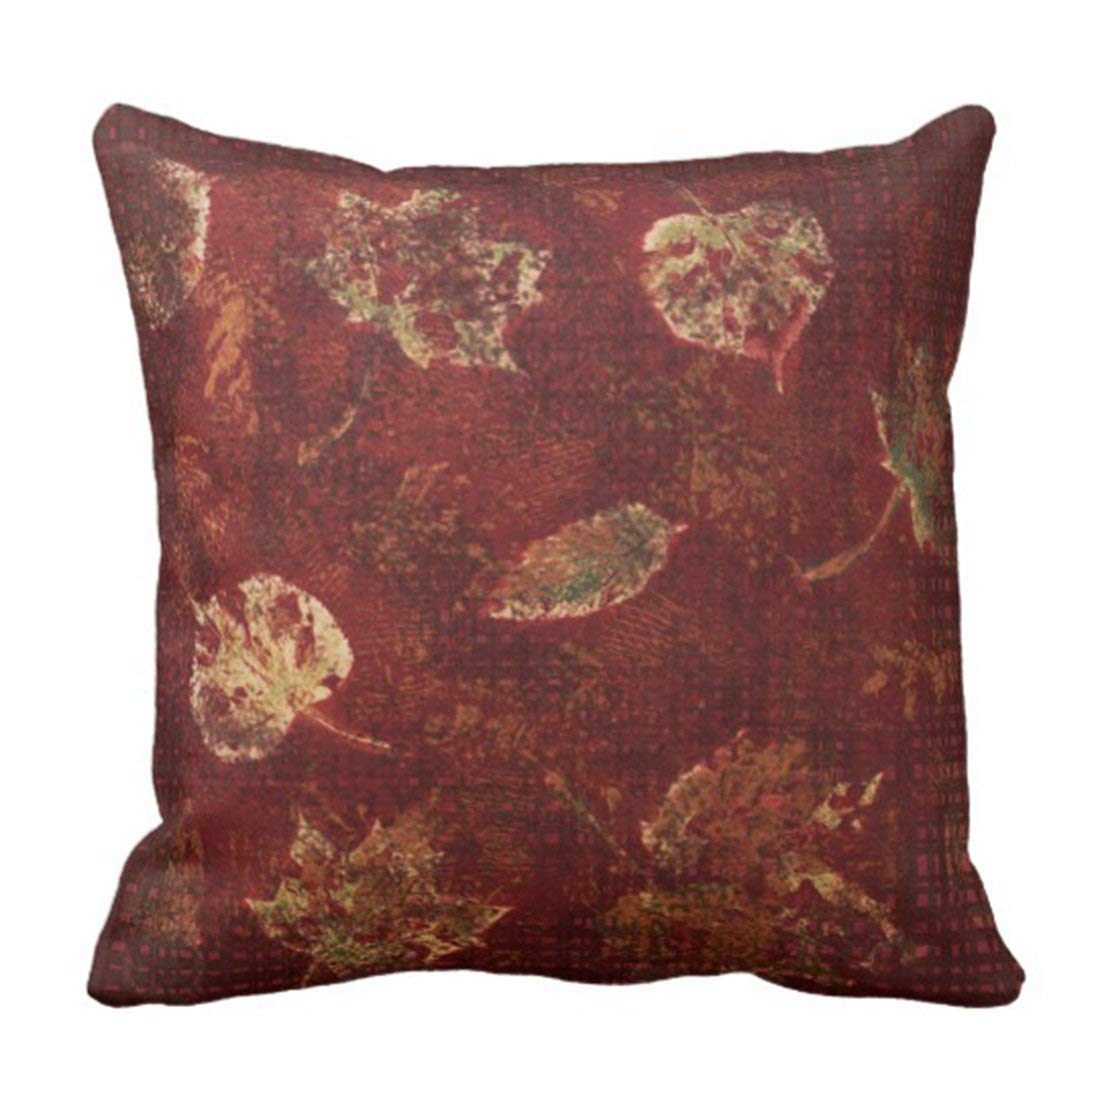 BPBOP Green Burgundy Deep Gold Fall Leaves Stencil Earthy Tartan Yellow From Pillowcase Cover 18x18 inch